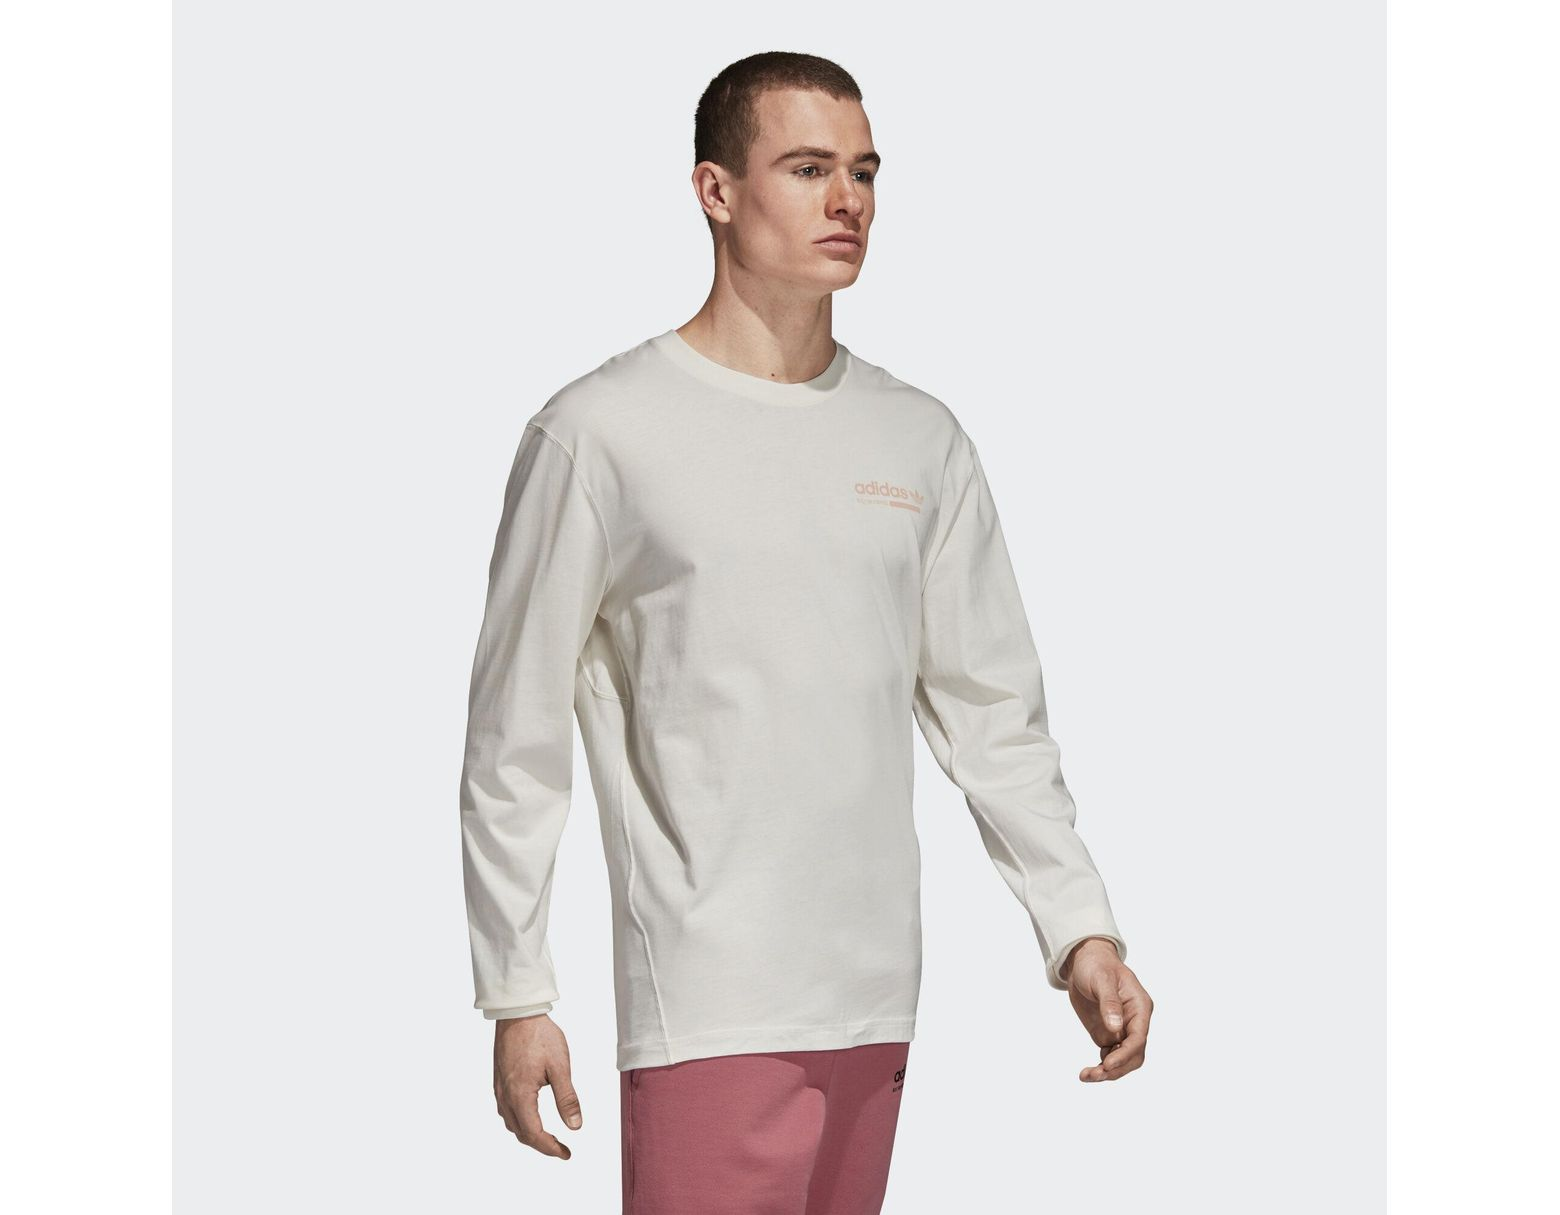 1f79eb6a604 adidas Kaval Tee in White for Men - Lyst